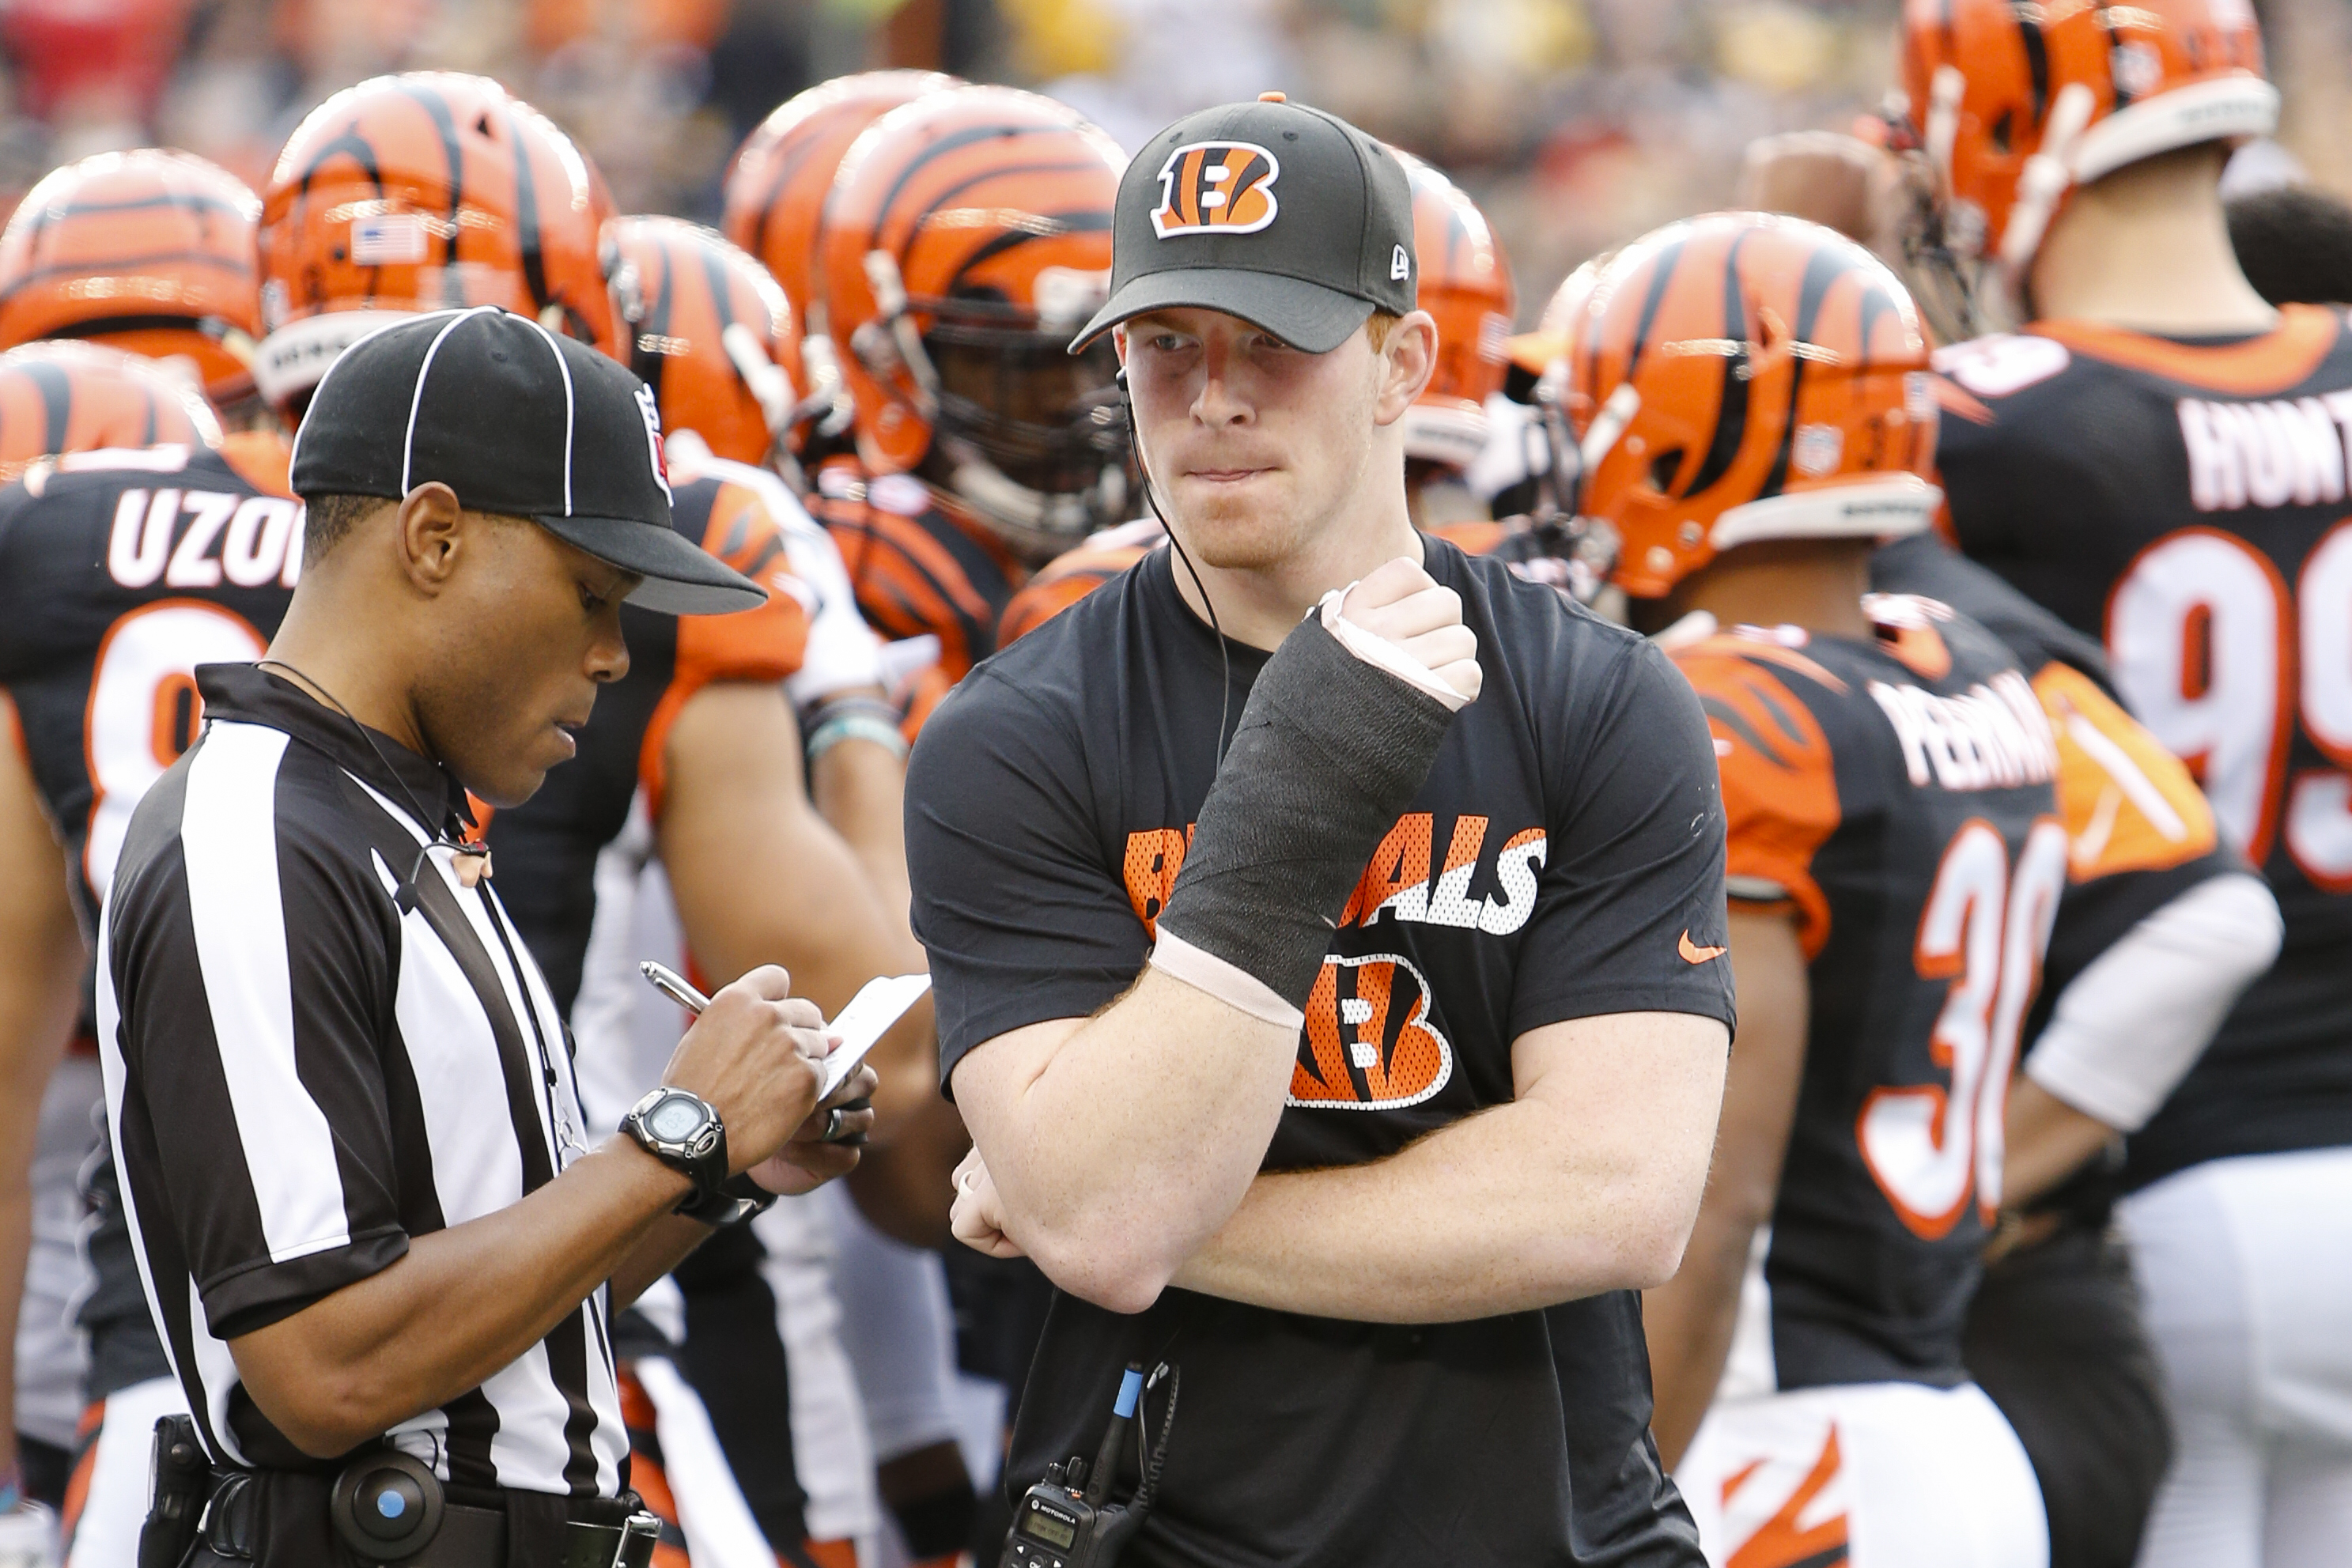 Cincinnati Bengals quarterback Andy Dalton walks the sideline with a cast on his throwing hand in the first half of an NFL football game against the Pittsburgh Steelers, Sunday, Dec. 13, 2015, in Cincinnati. (AP Photo/Frank Victores)